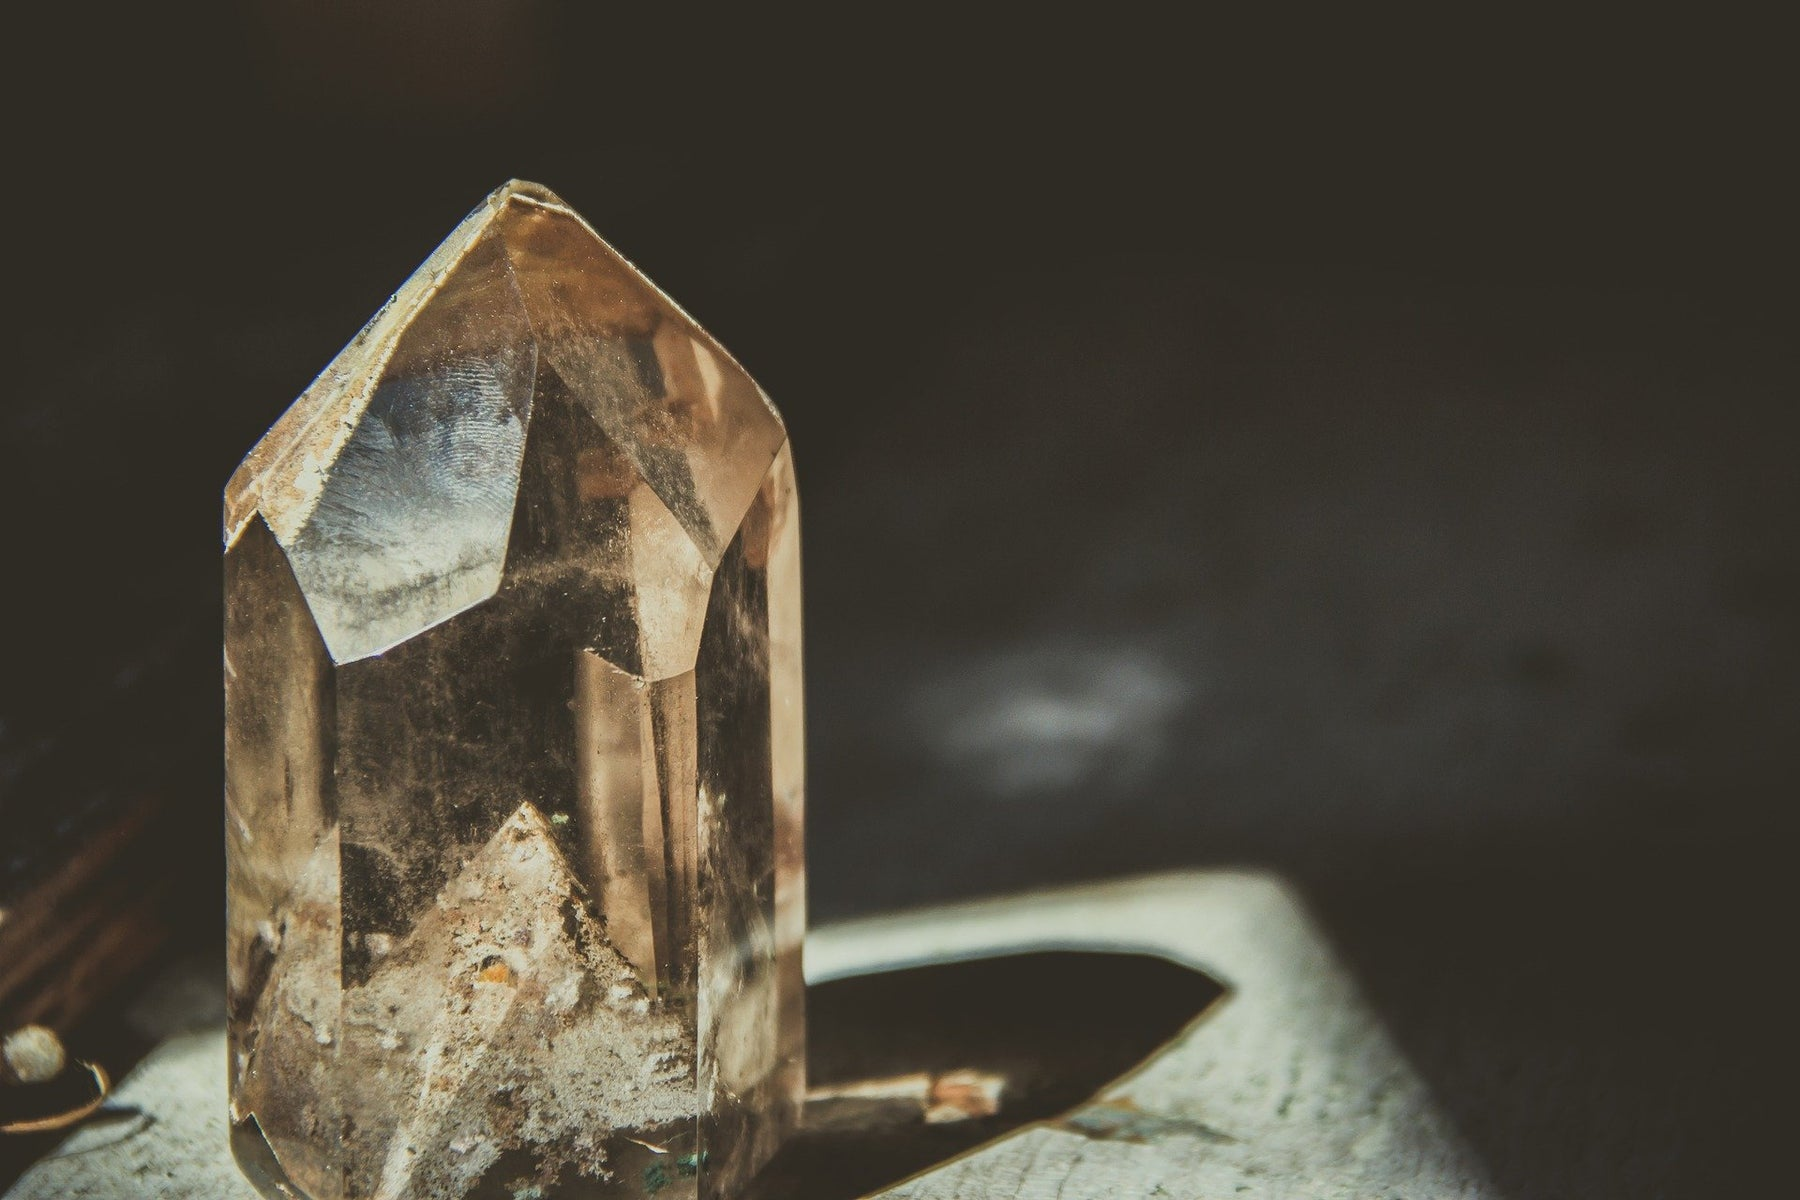 Real Vs. Fake Citrine: How to Spot the Difference